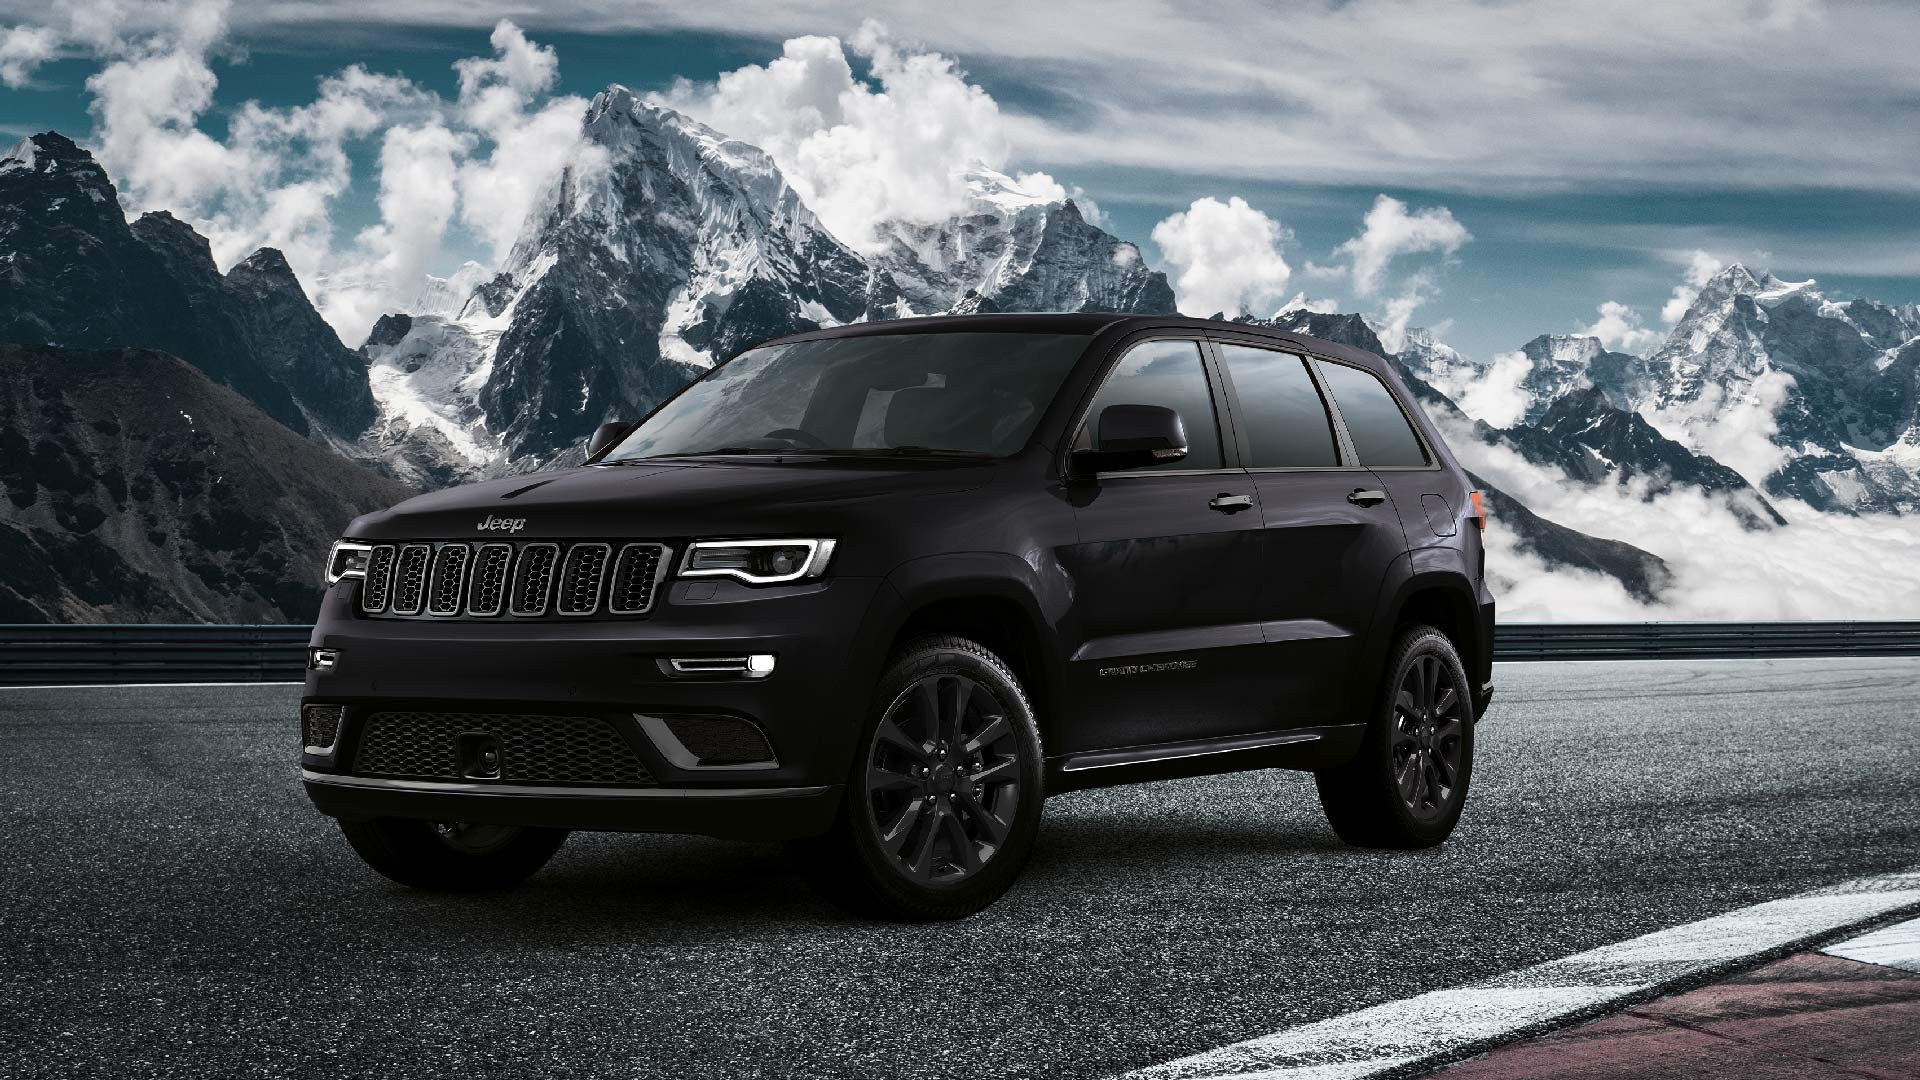 Jeep Grand Cherokee sort